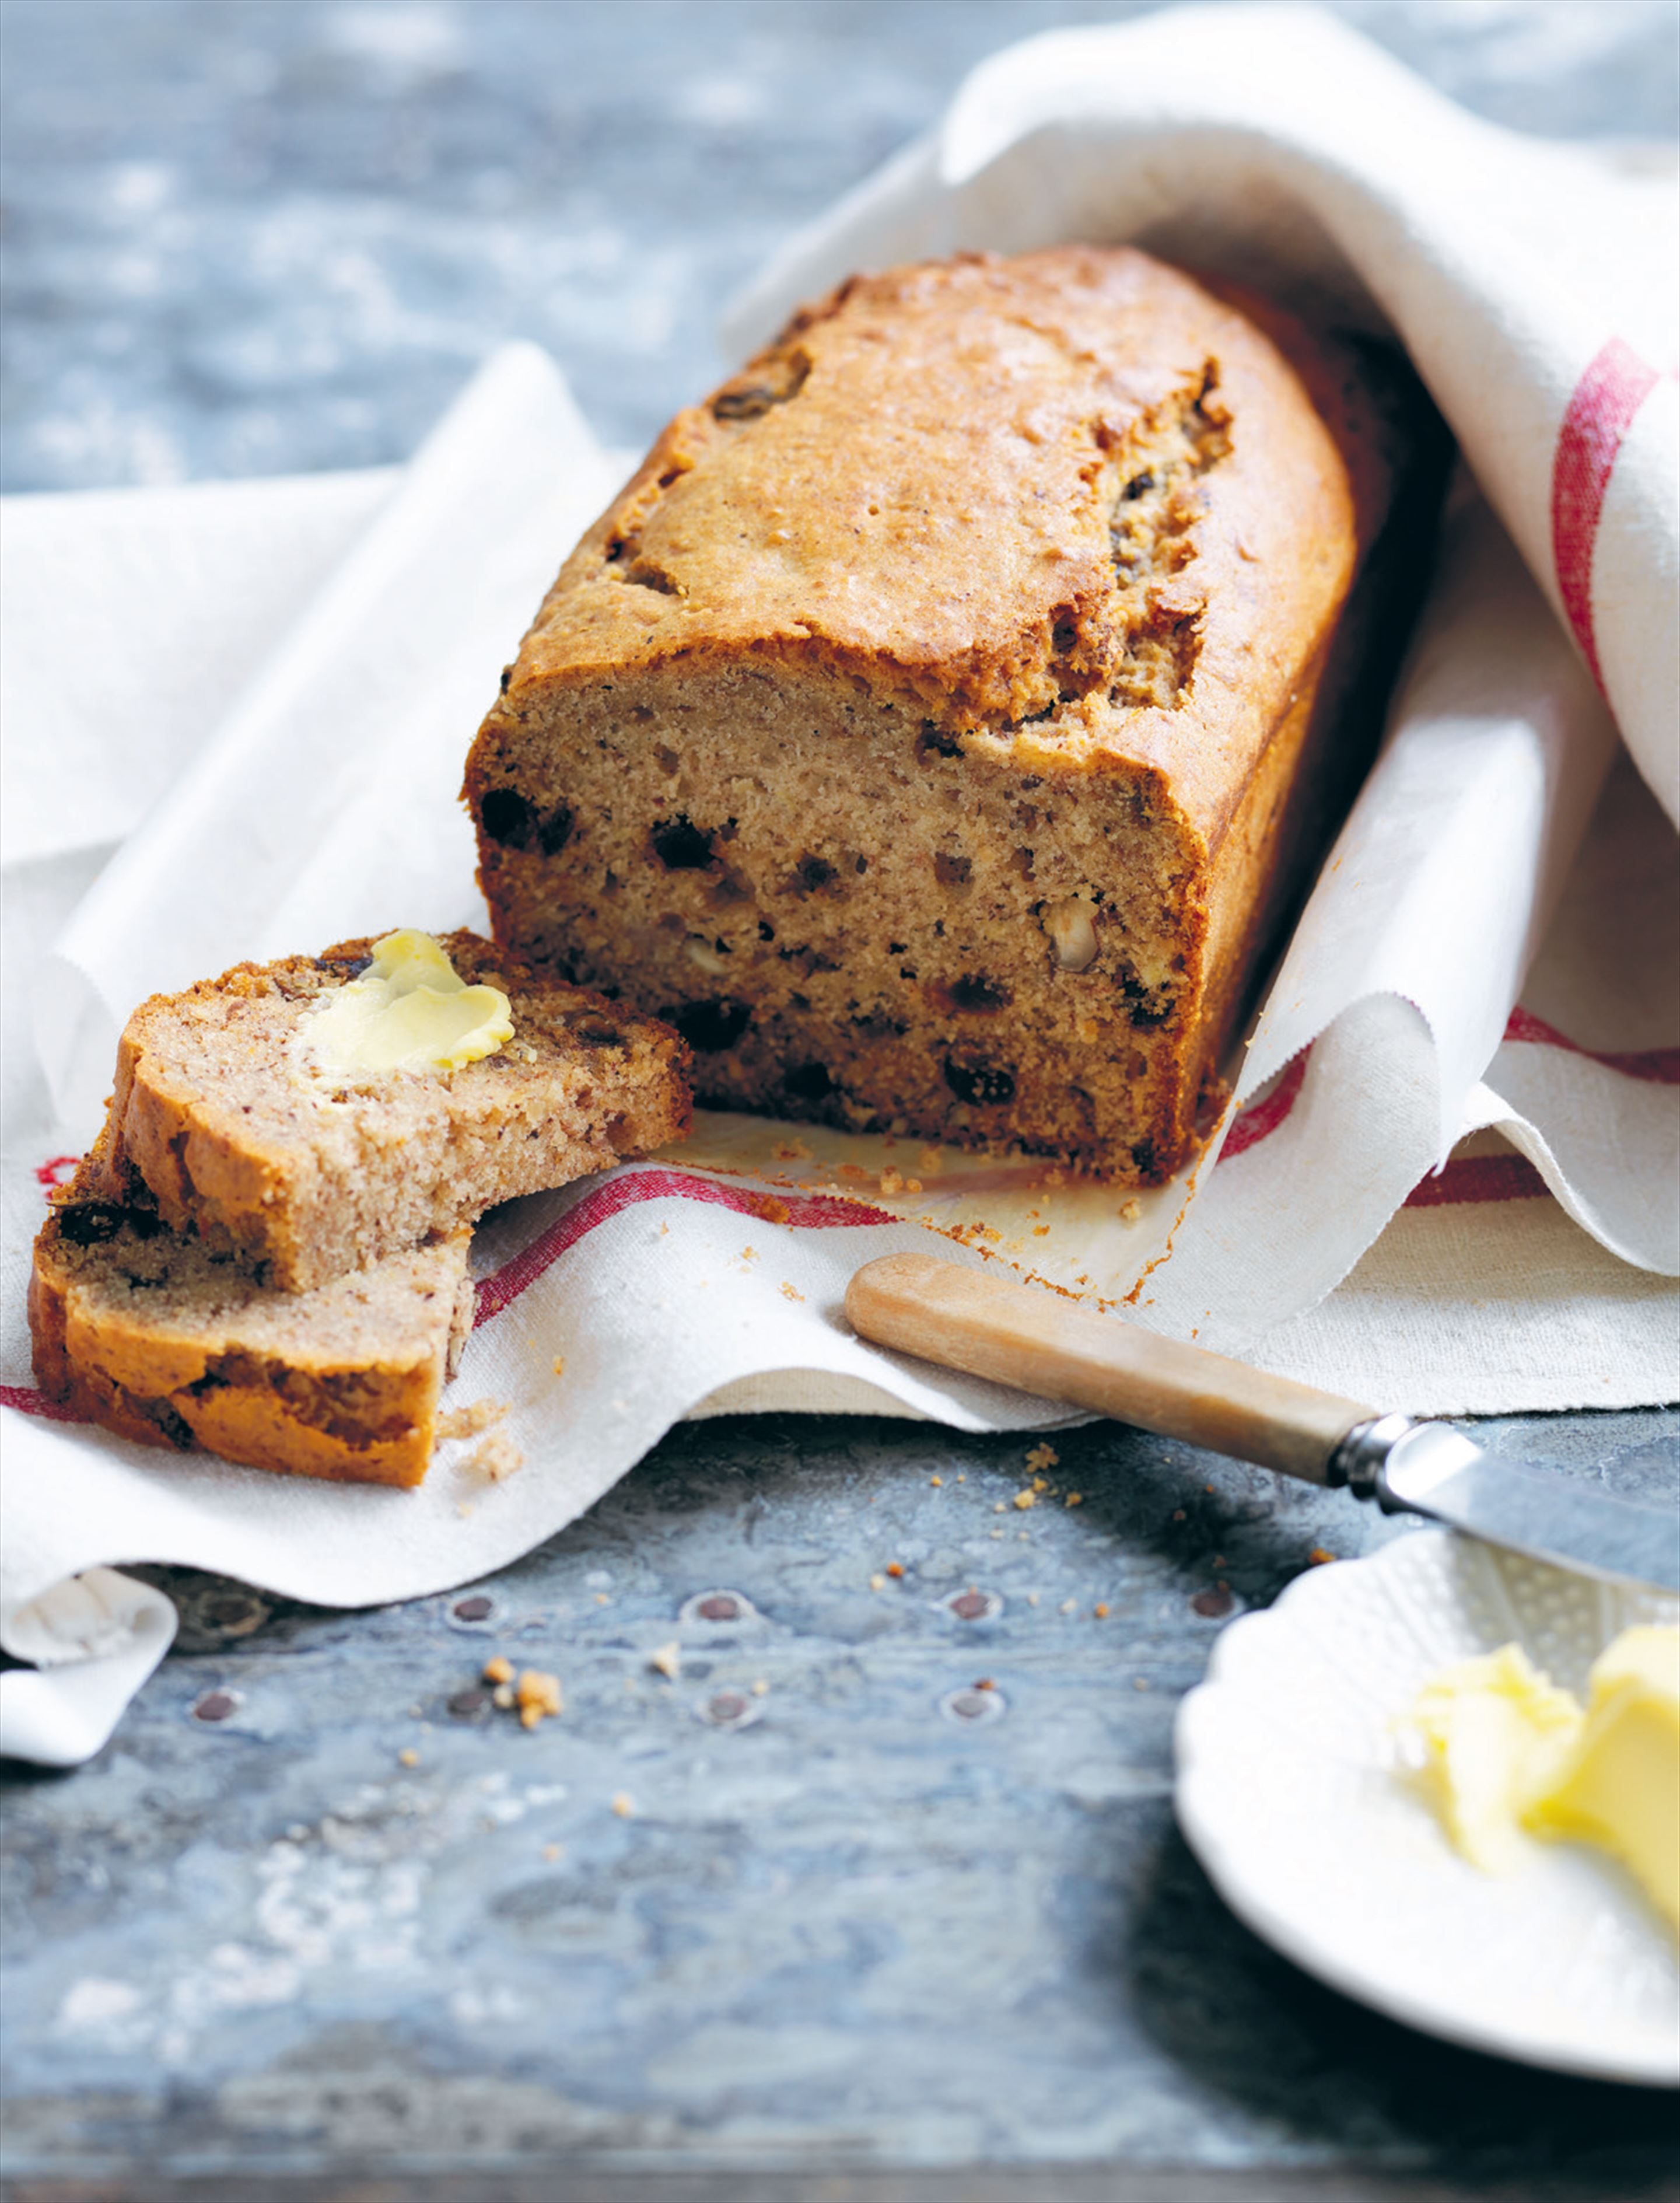 Banana, hazelnut and honey bread